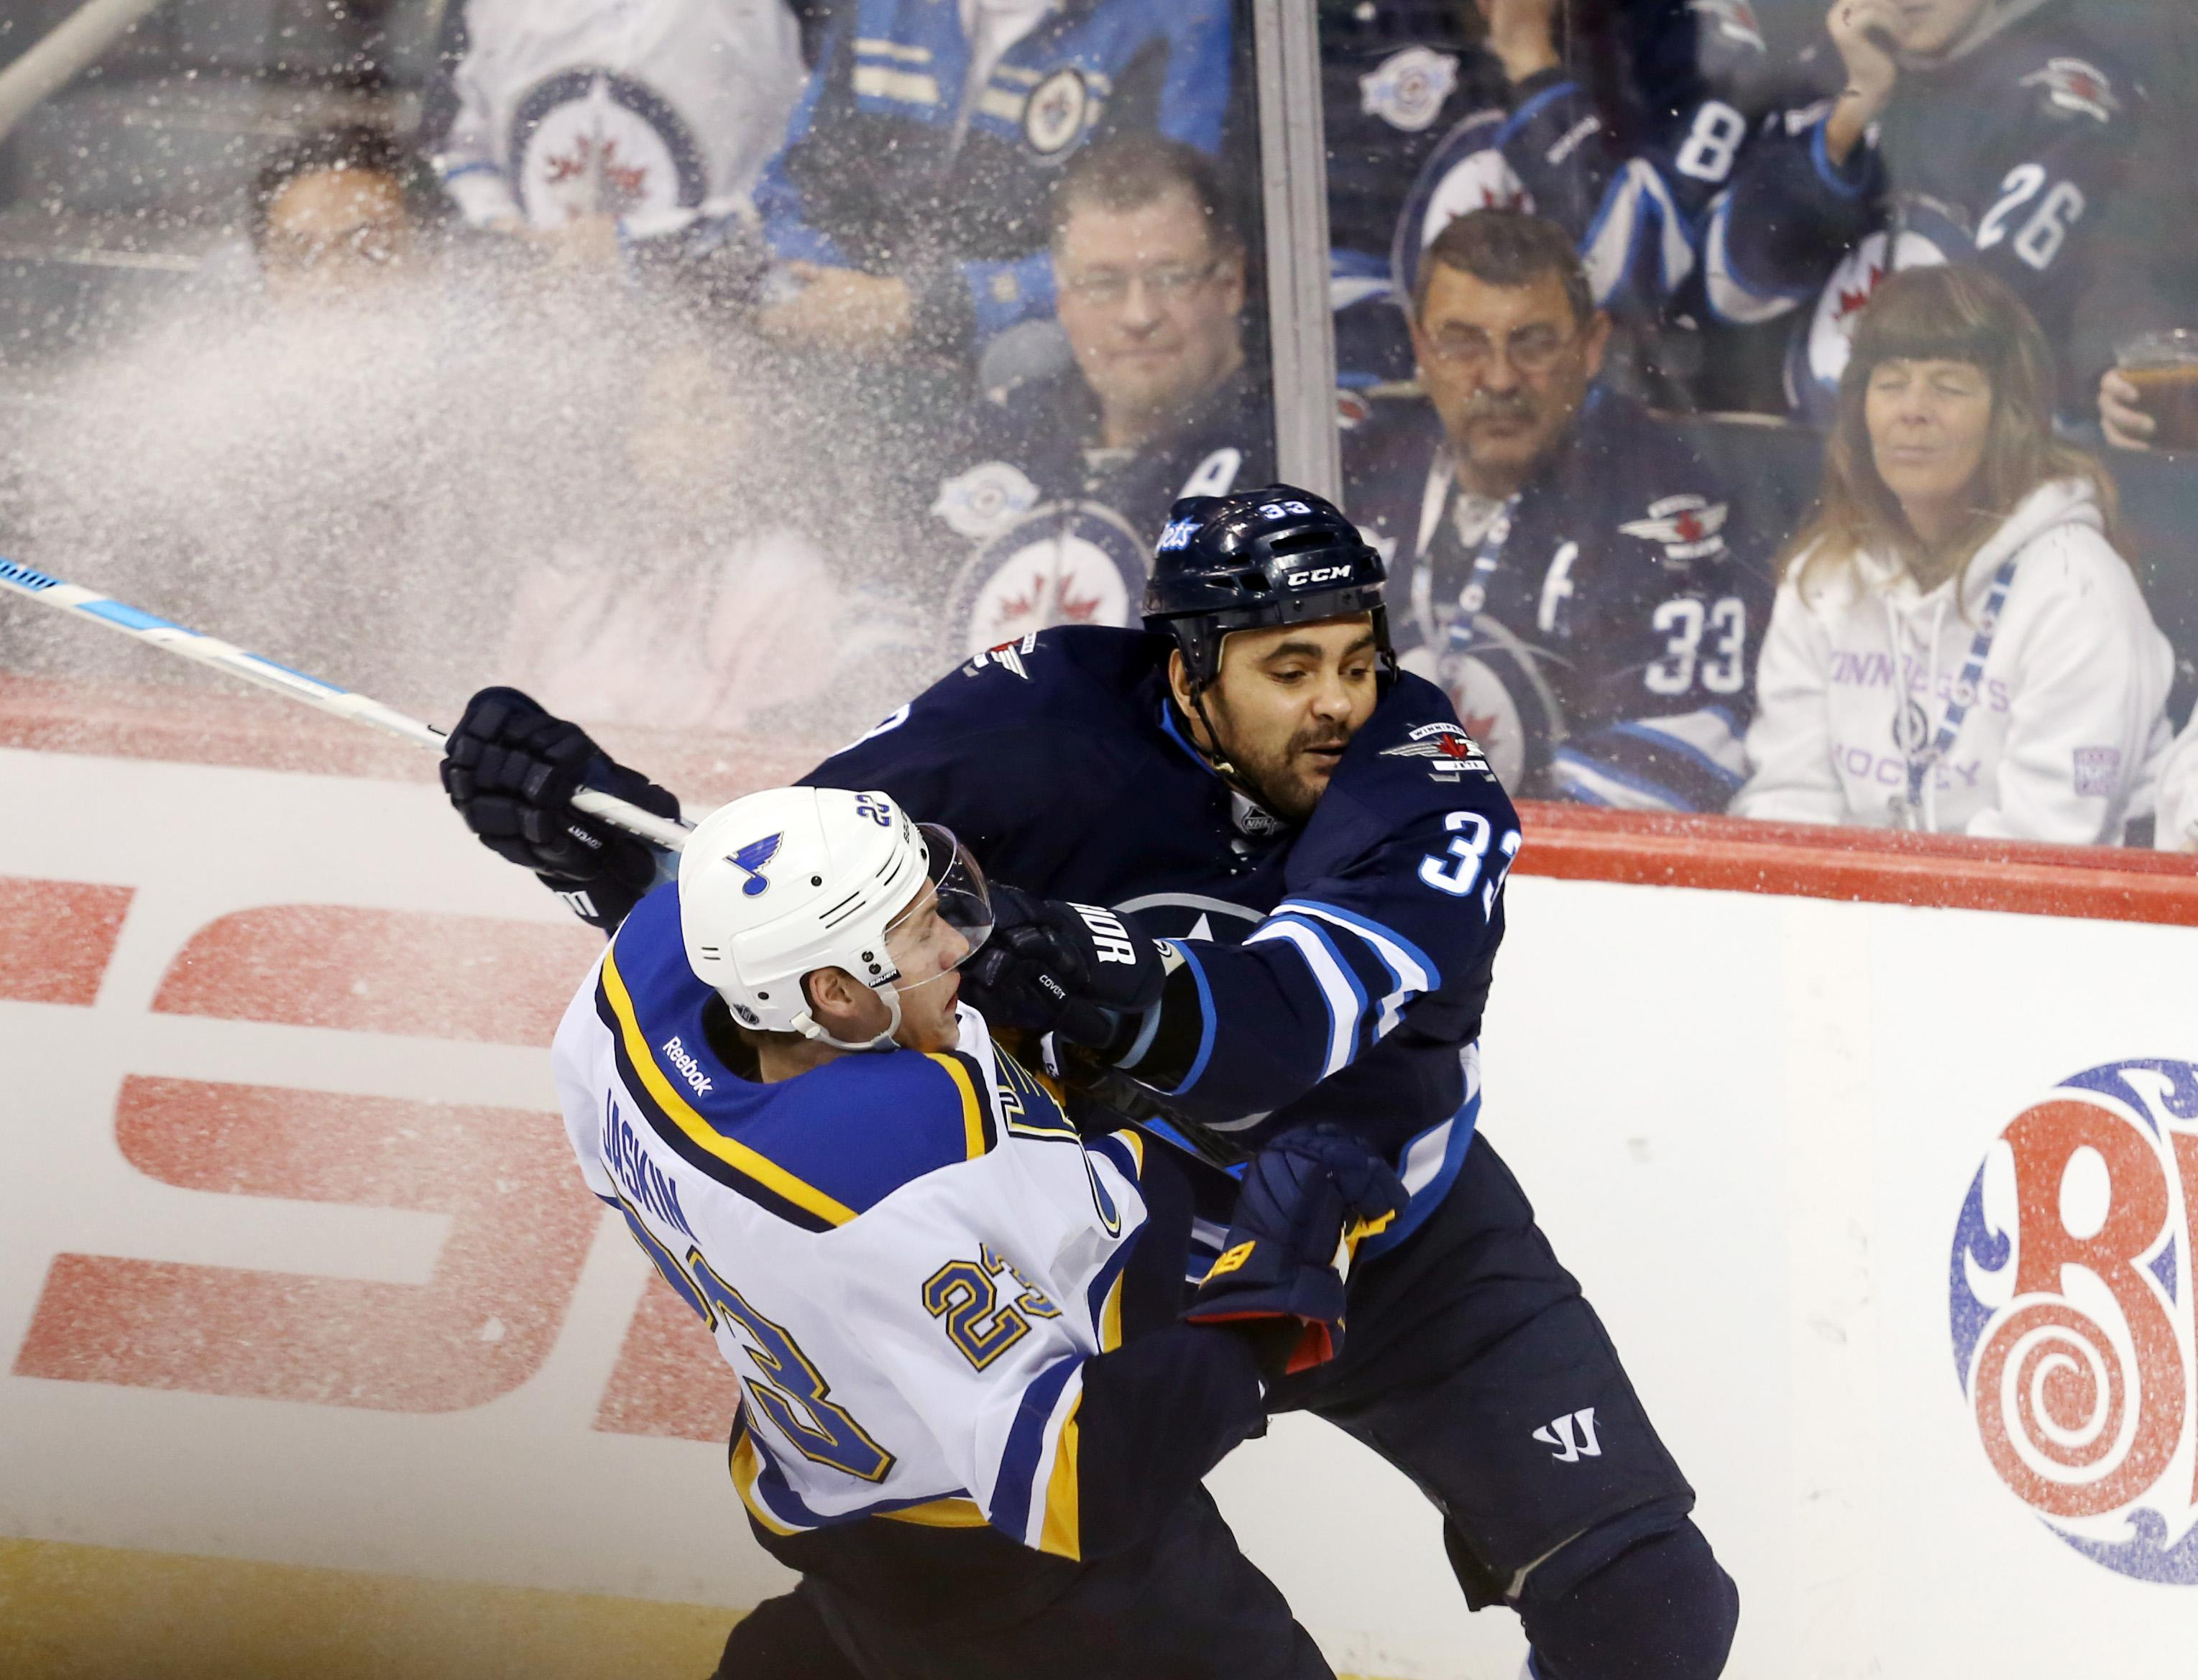 Dustin Byfuglien out 2-4 weeks with an upper body injury (Video)